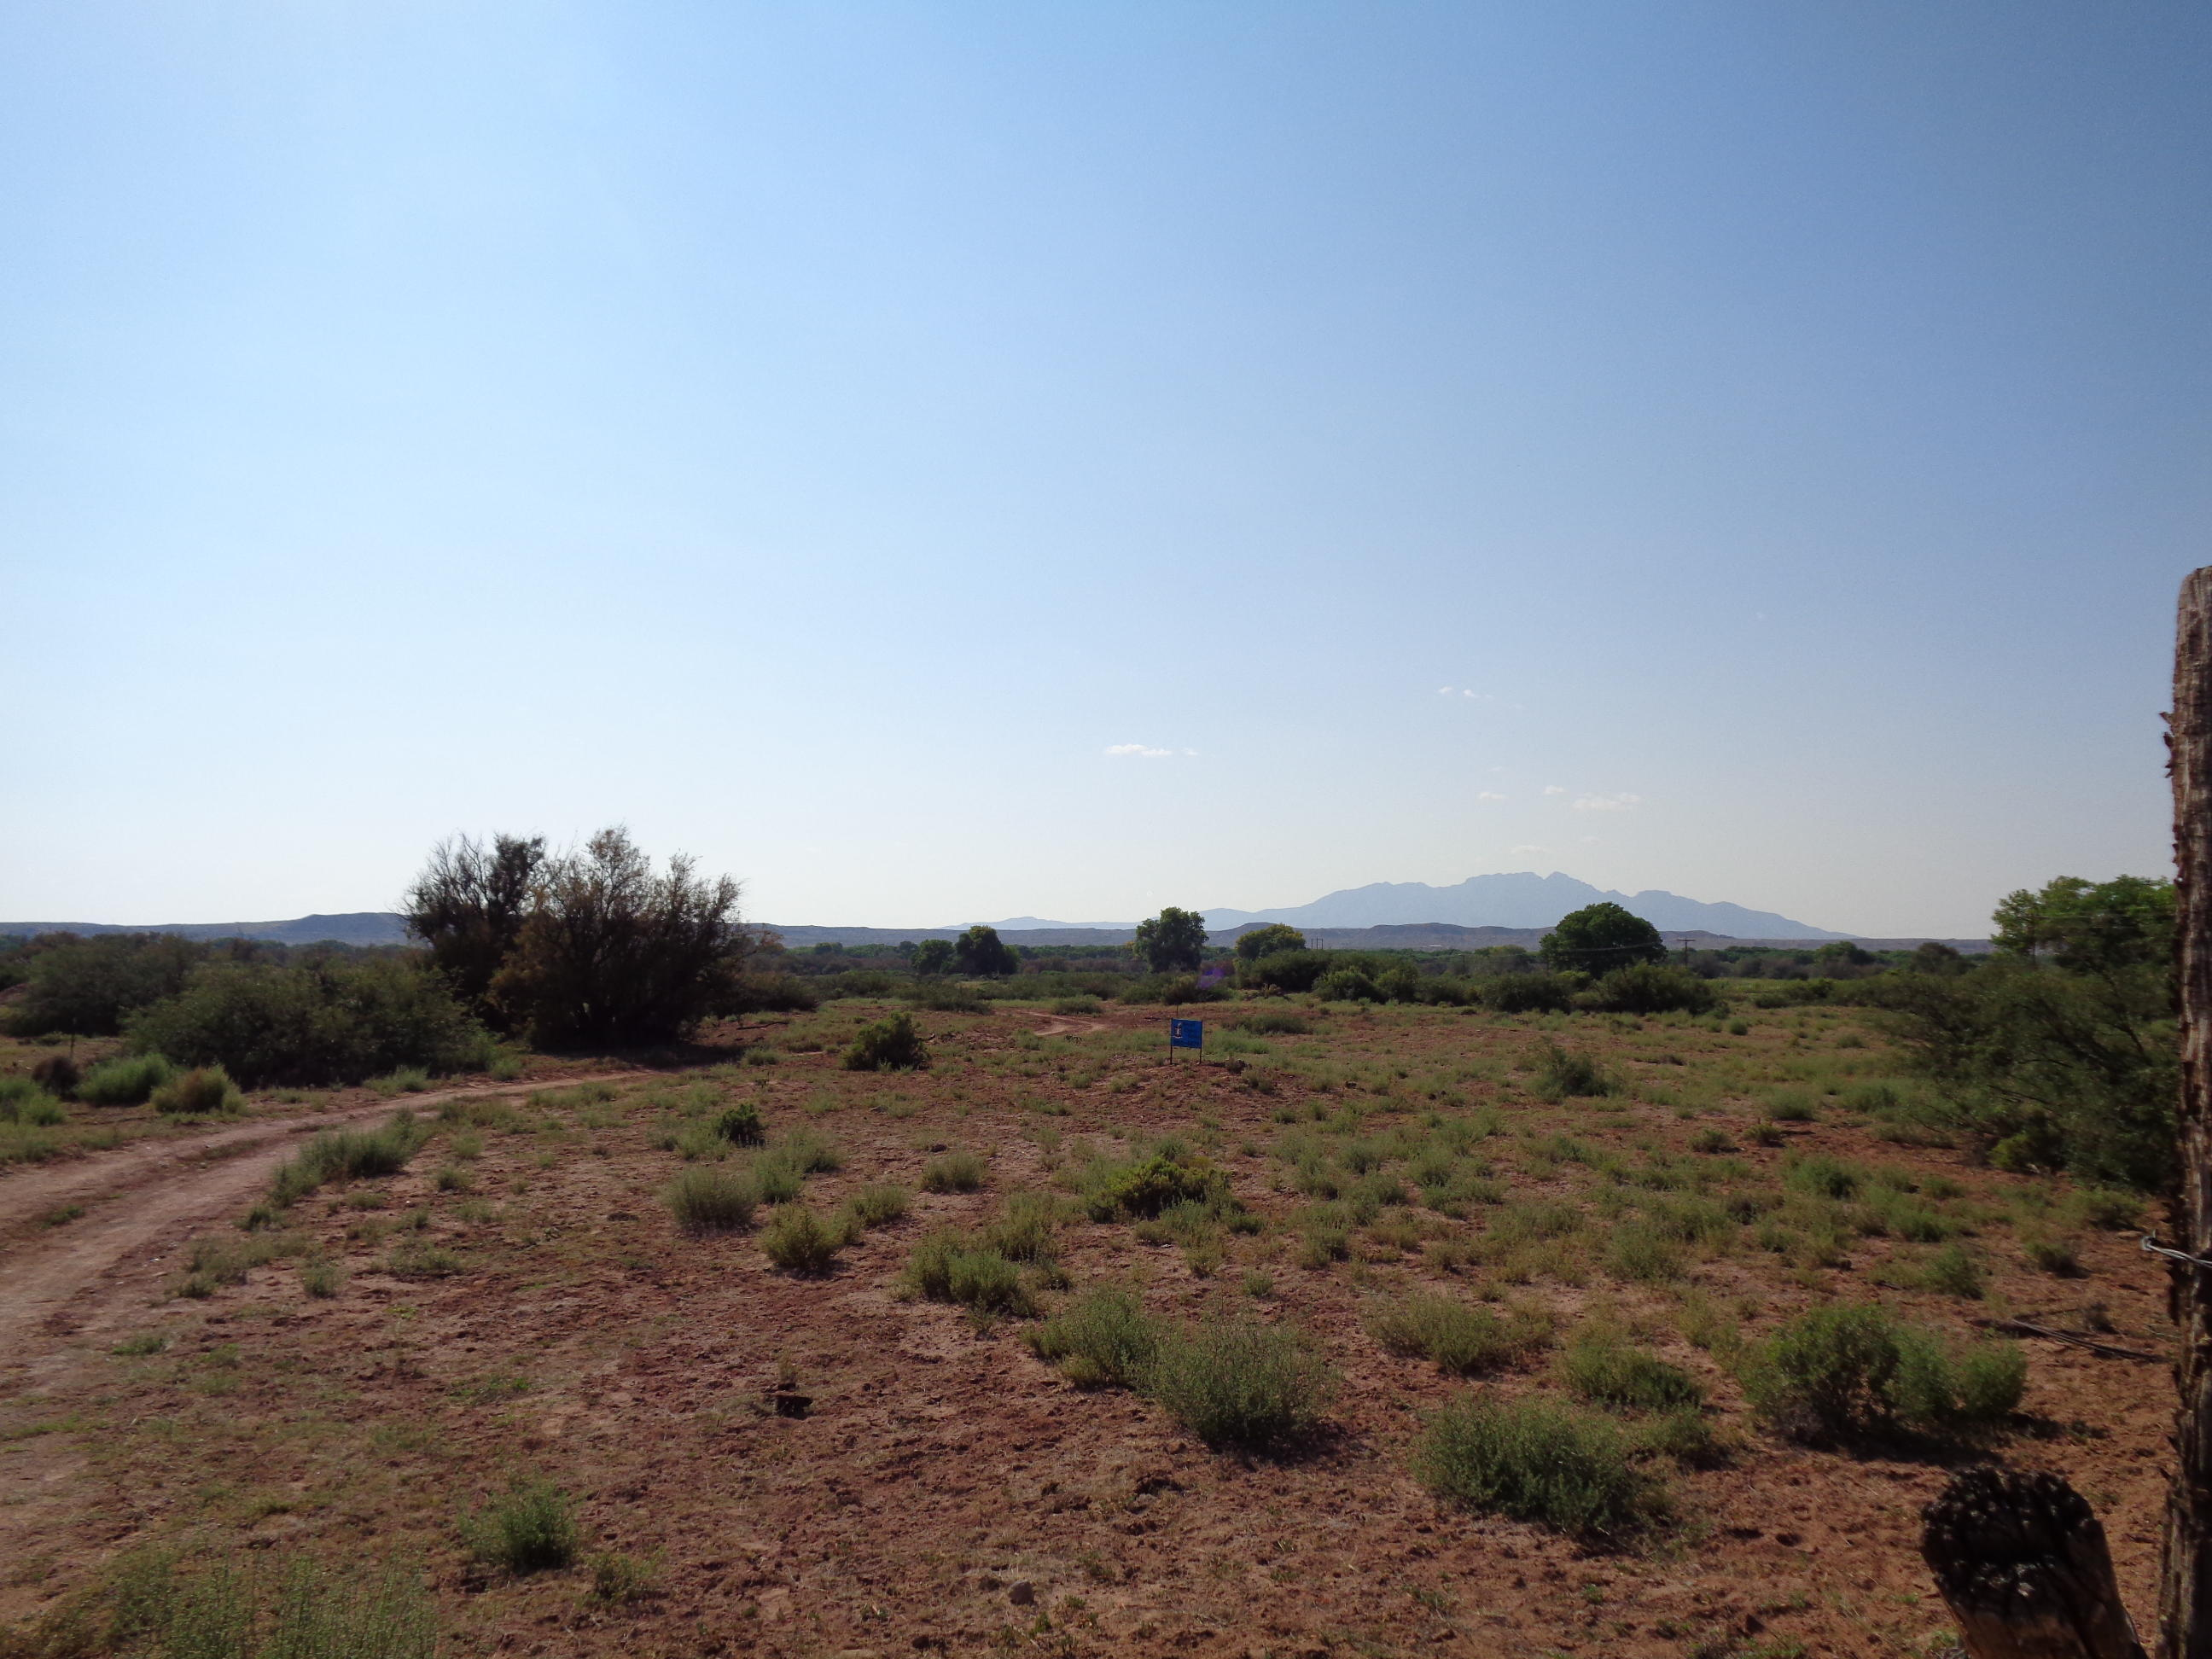 WEST OF CALLE DE CENTRO SOUTH Property Photo - La Joya, NM real estate listing